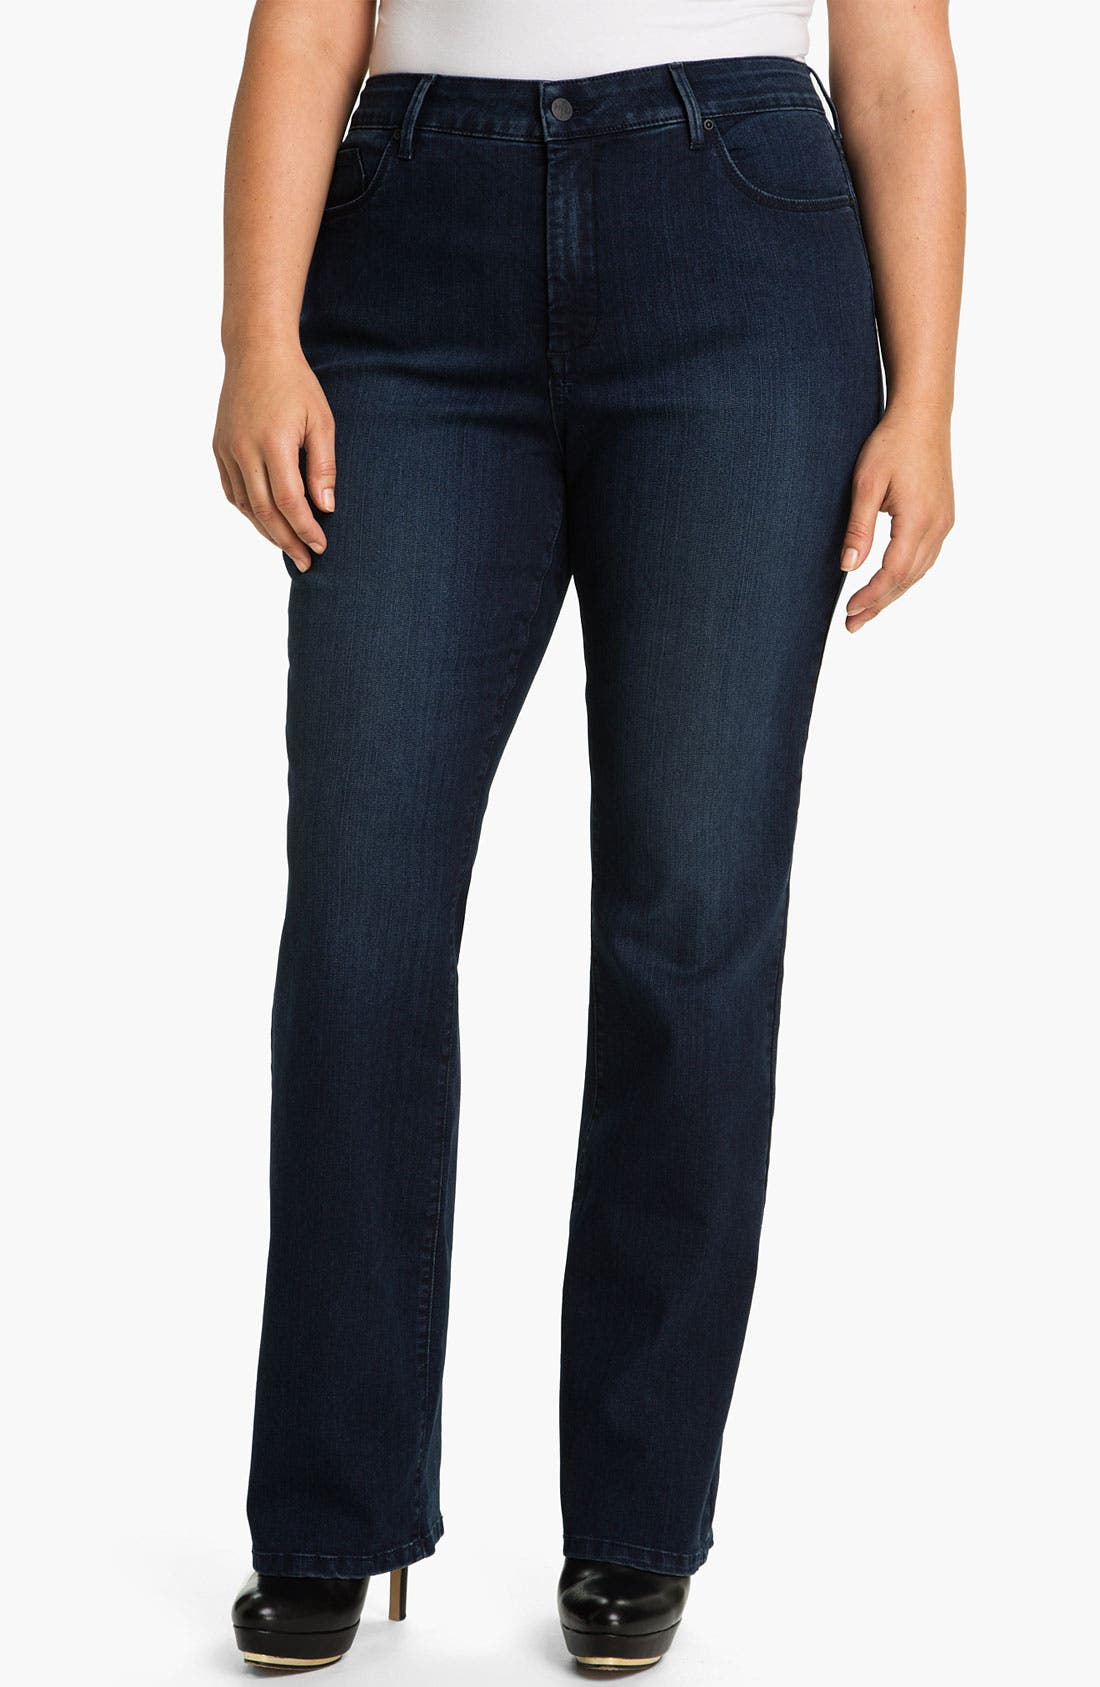 Alternate Image 1 Selected - NYDJ 'Marilyn' Straight Leg Stretch Jeans (Plus)